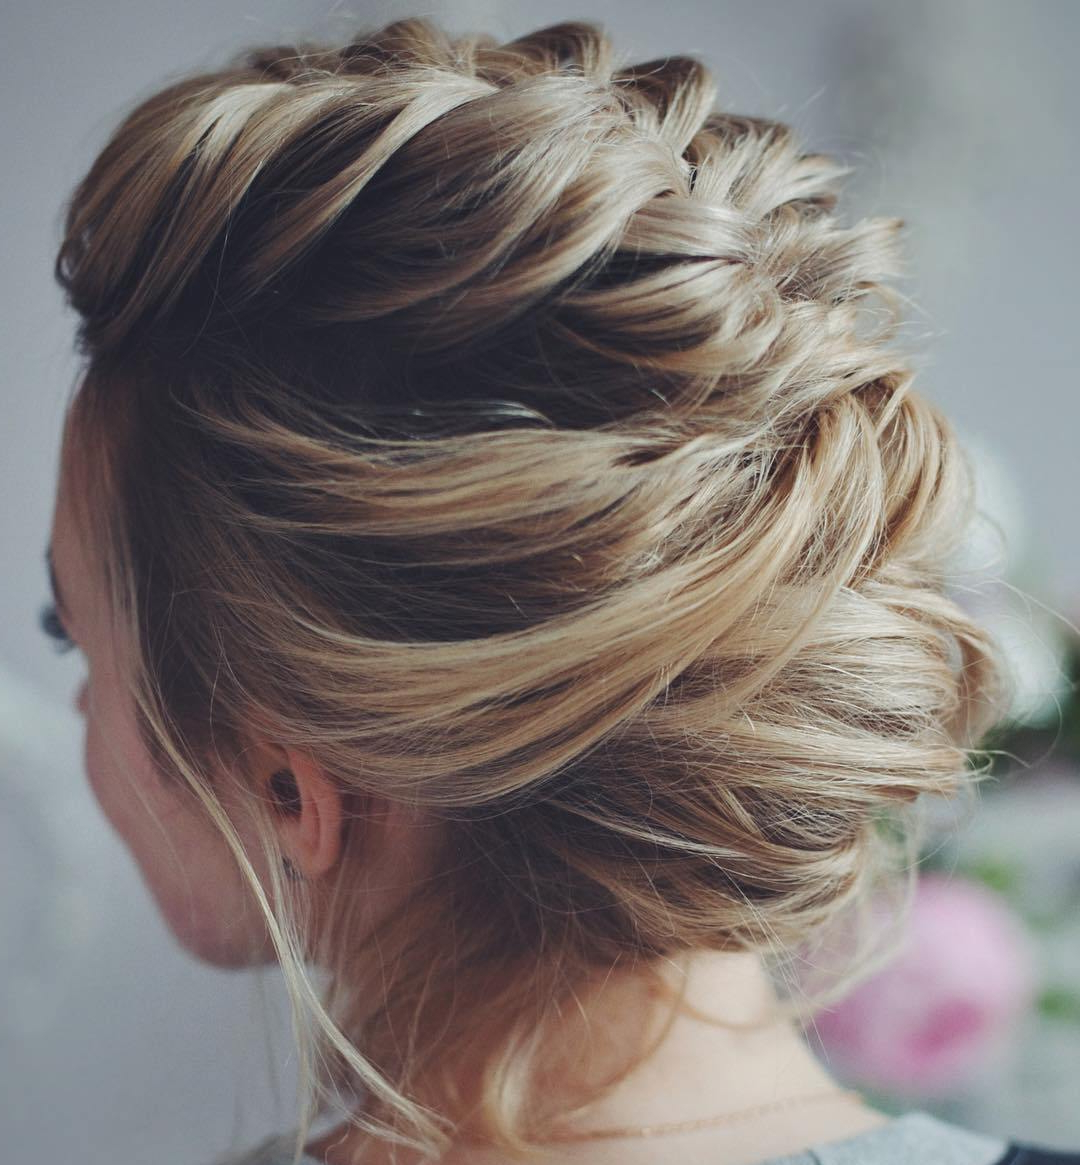 50 Hottest Prom Hairstyles For Short Hair Throughout Favorite Complex Looking Prom Updos With Variety Of Textures (View 3 of 20)